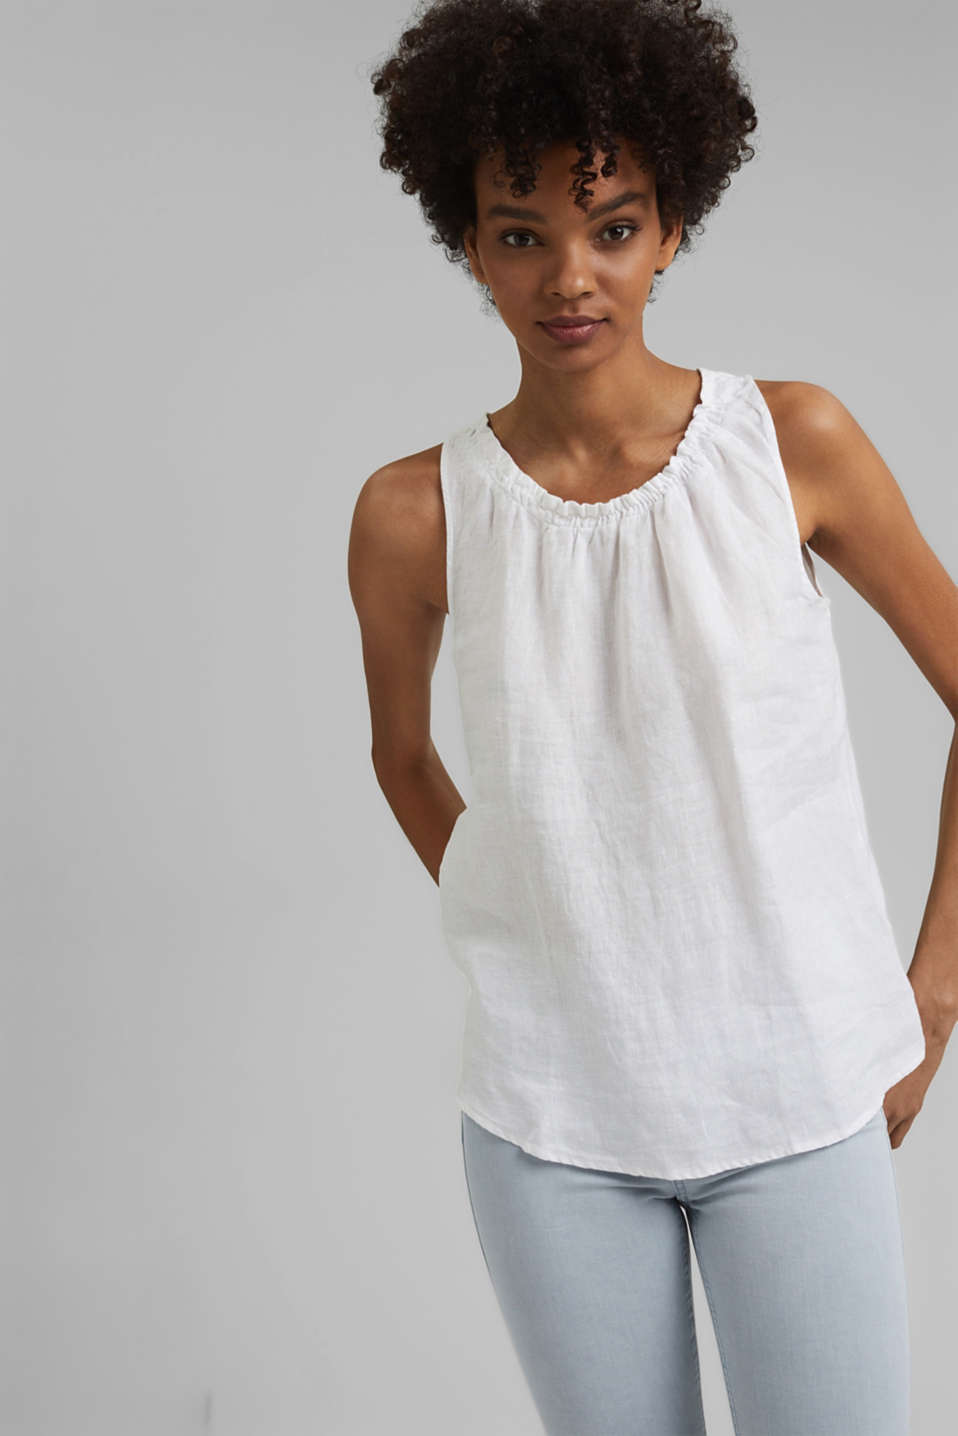 edc - Made of linen: Blouse top with frills